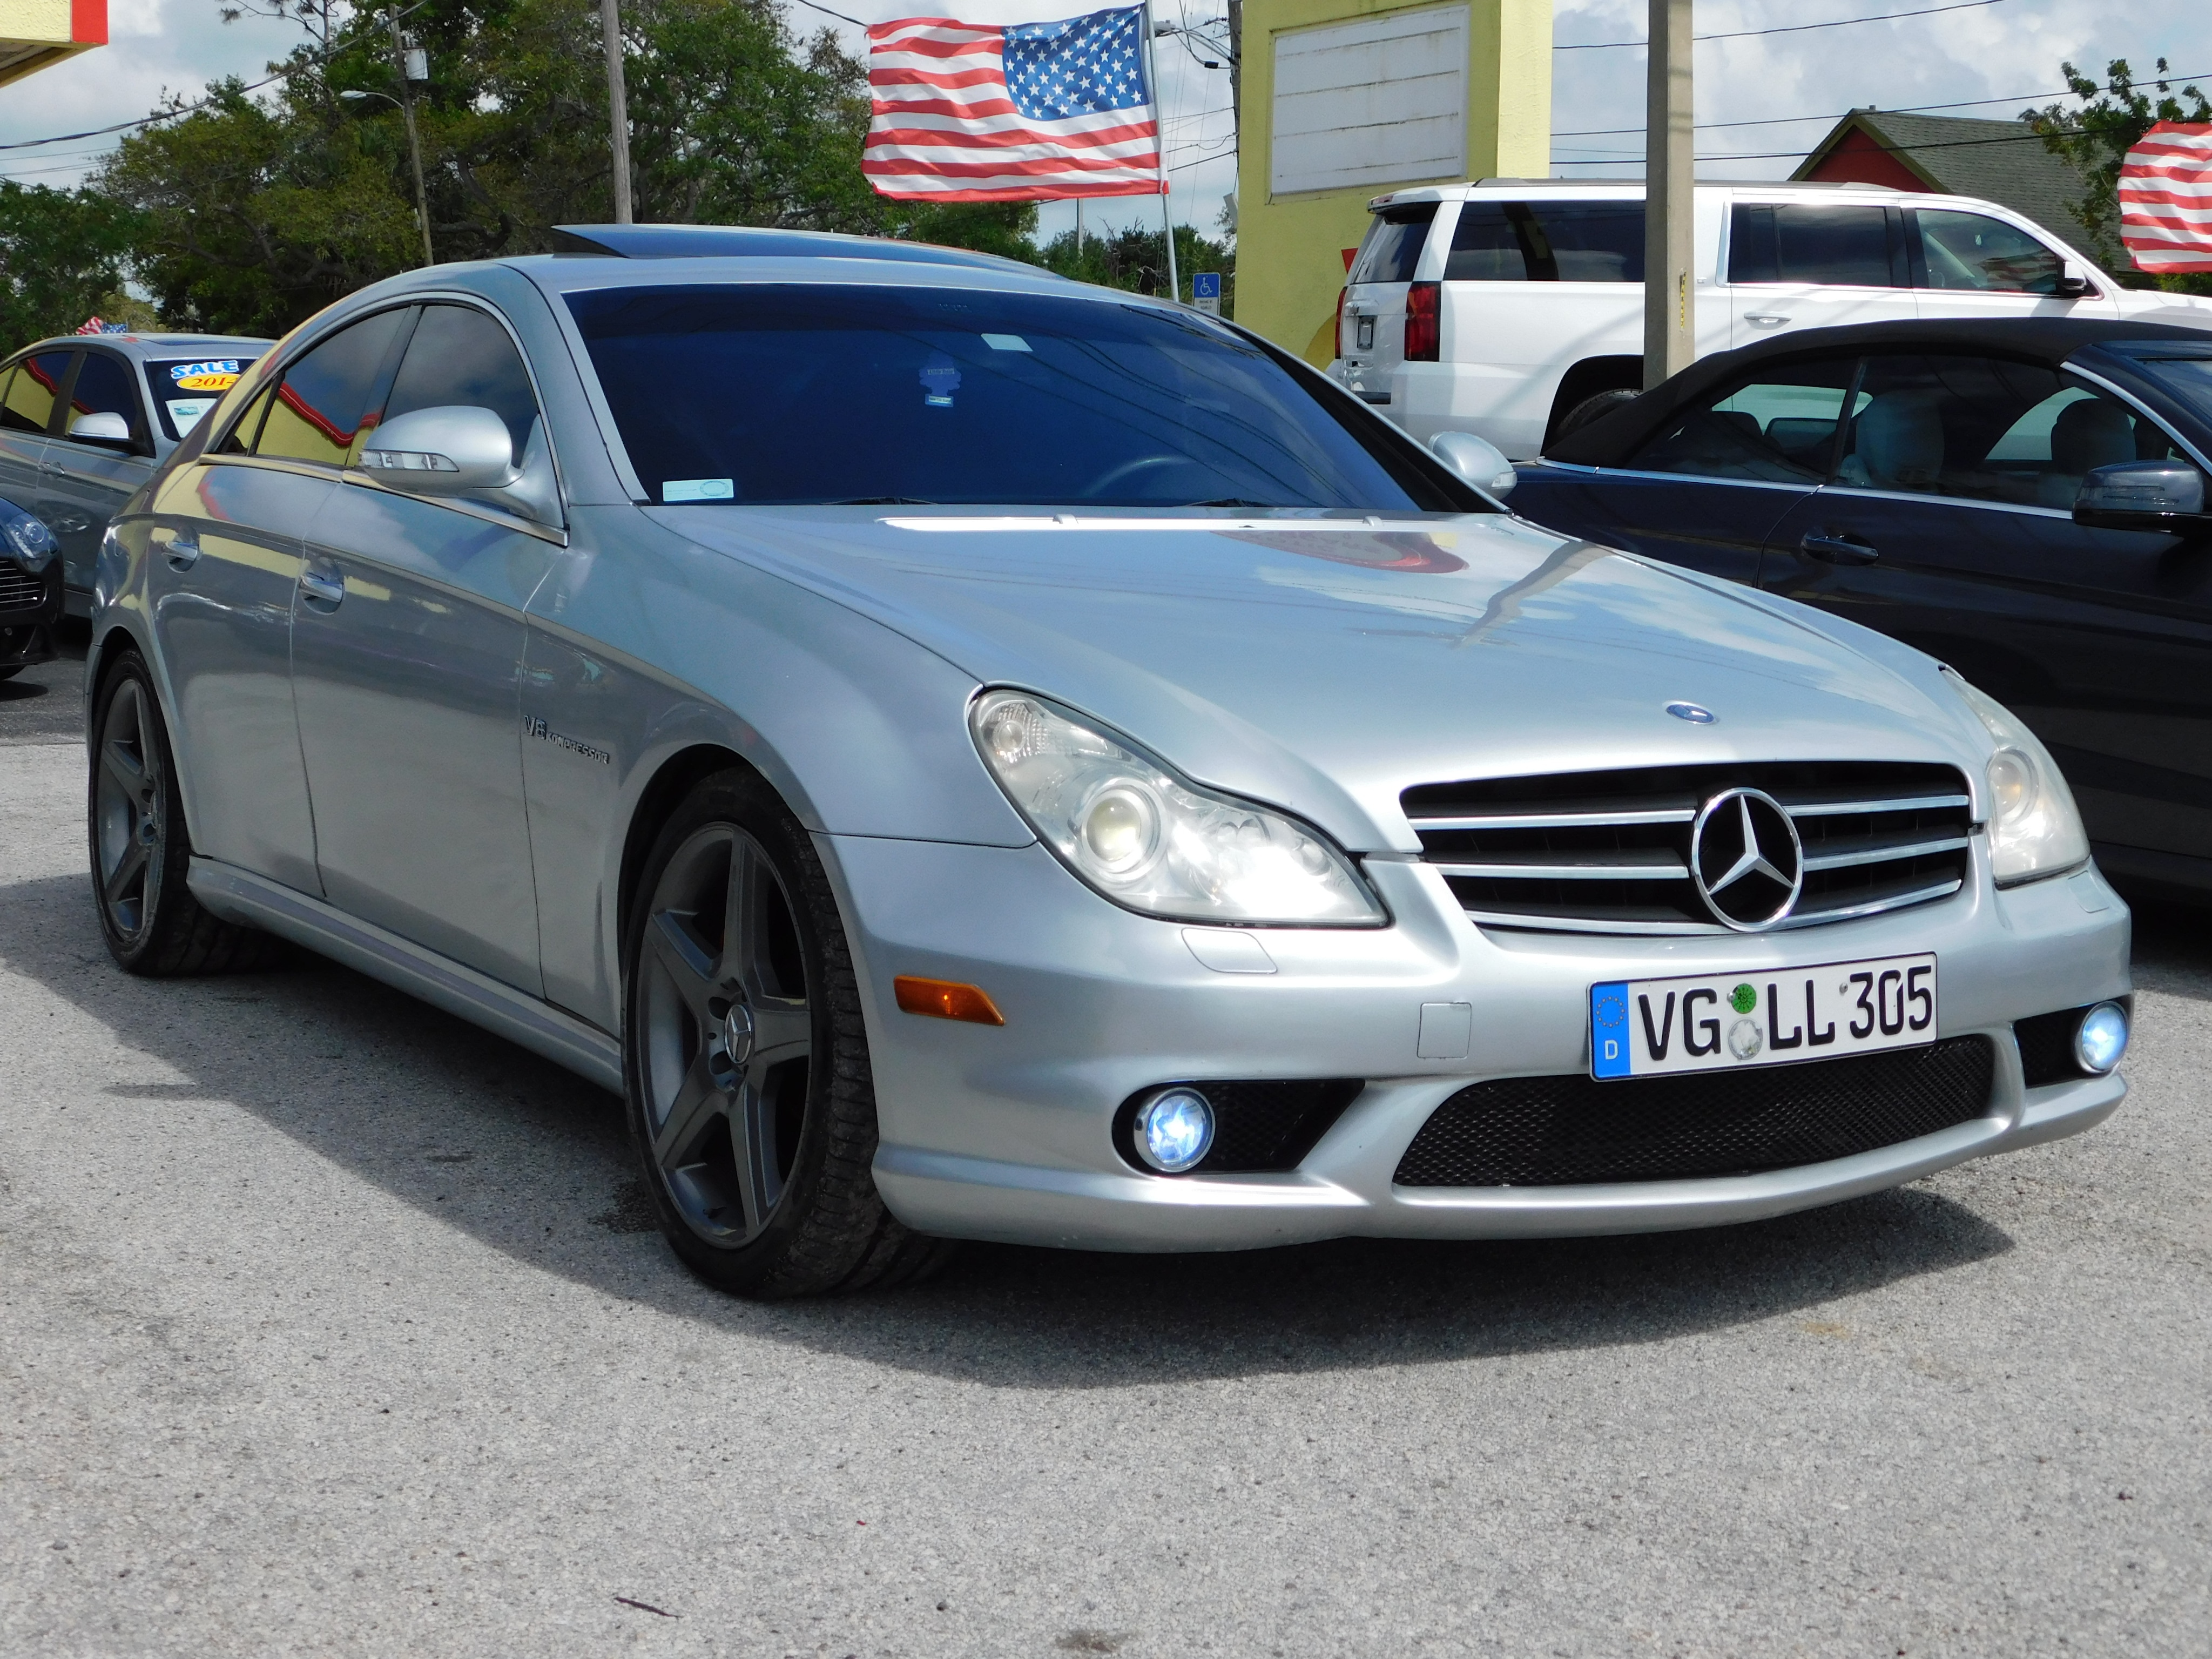 2006 Mercedes Benz CLS Class CLS 55 AMG Used Cars In Tarpon Springs, FL  34689